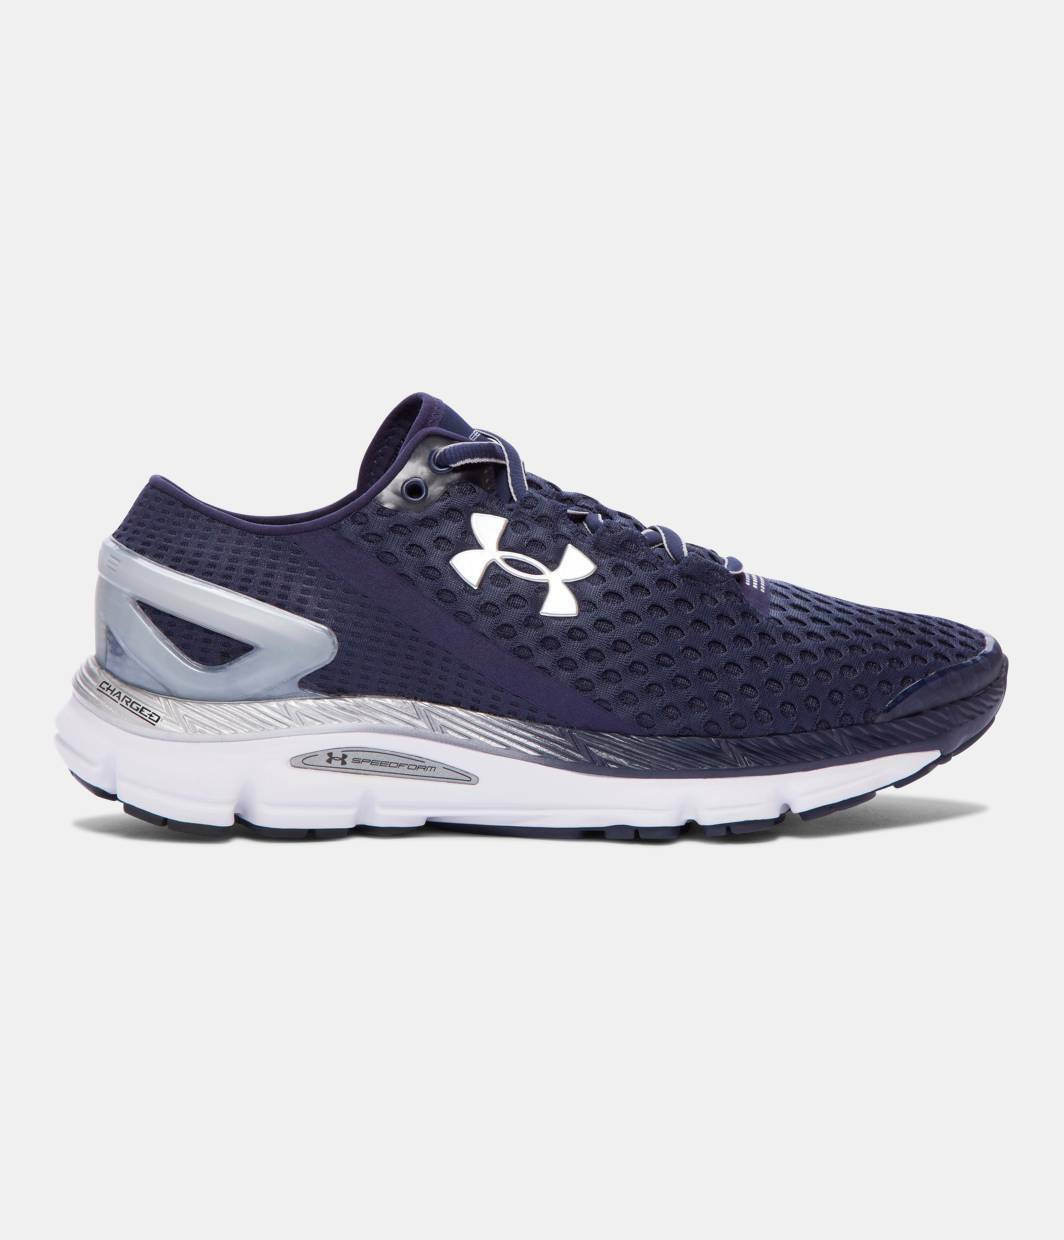 pétalo Celda de poder evitar  Mens Under Armour Speedform Gemini 3 Running Shoes Trainers Blackout Navy  10 for sale online | eBay